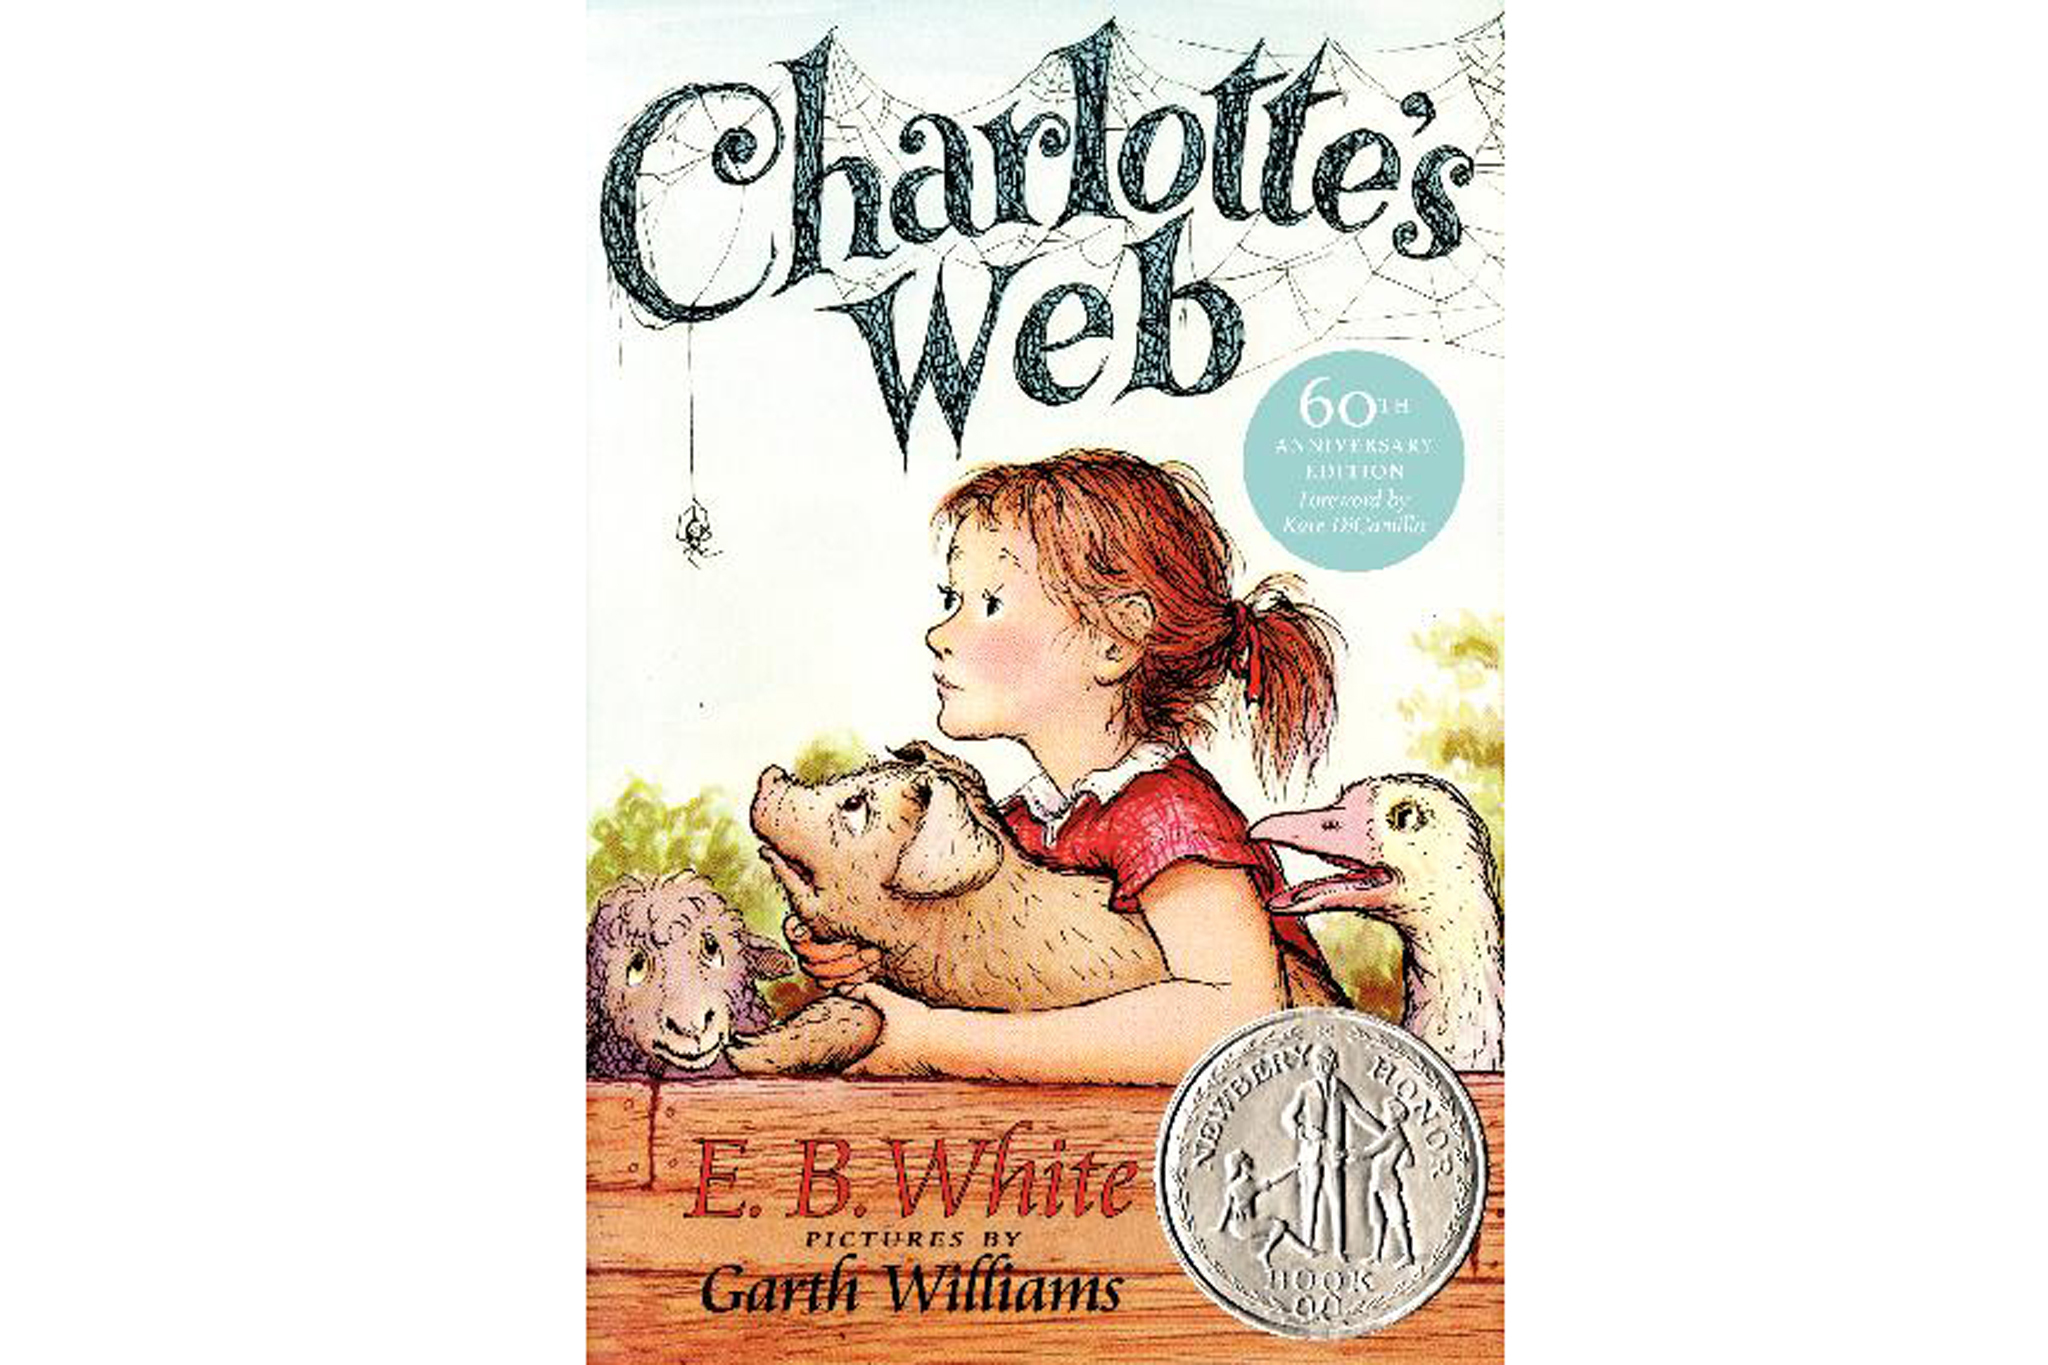 Charlotte's Web by E.B. White